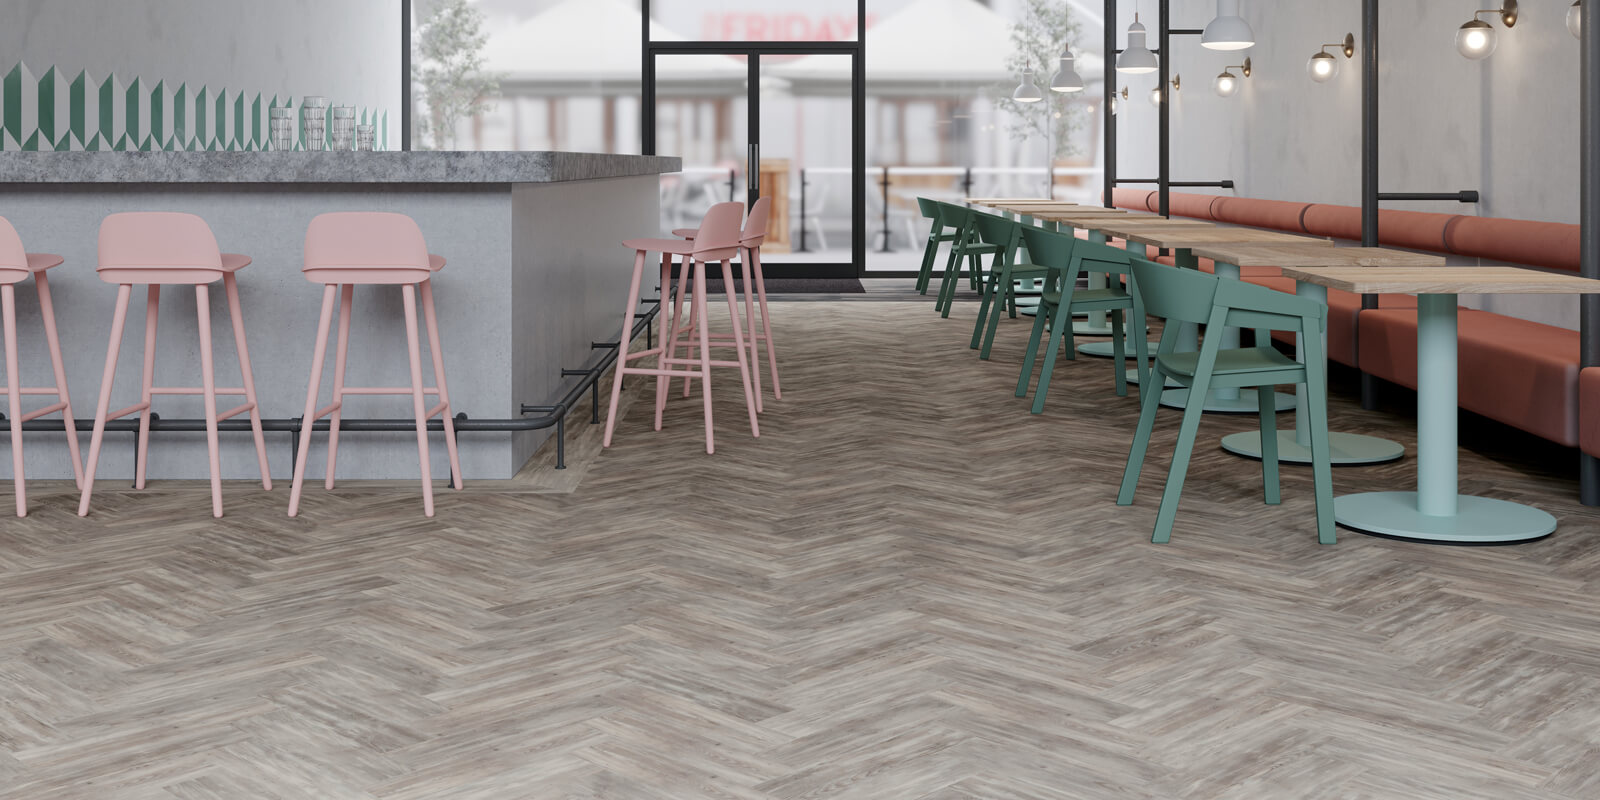 Amtico Signature Halo Pine AR0W8250 in a large parquet pattern